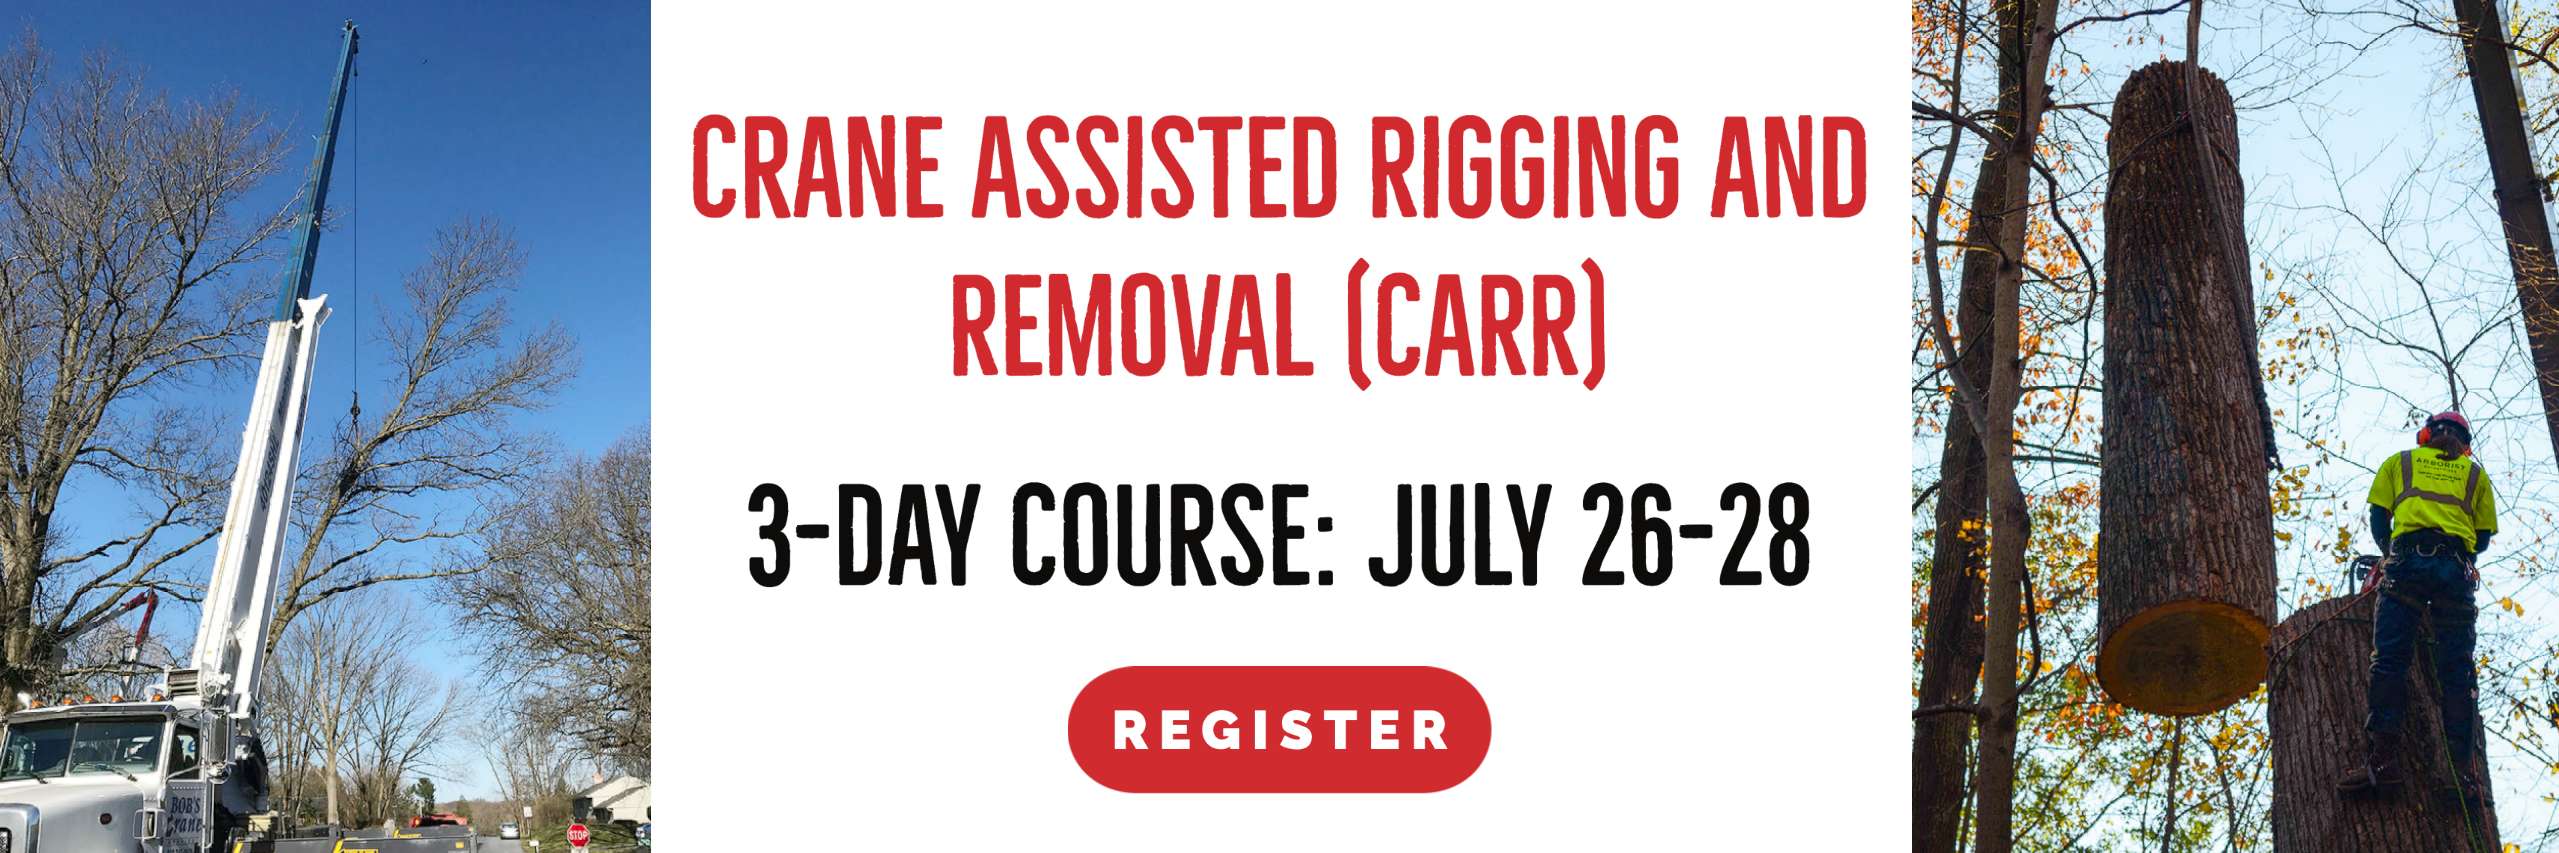 Crane Assisted Rigging Removal